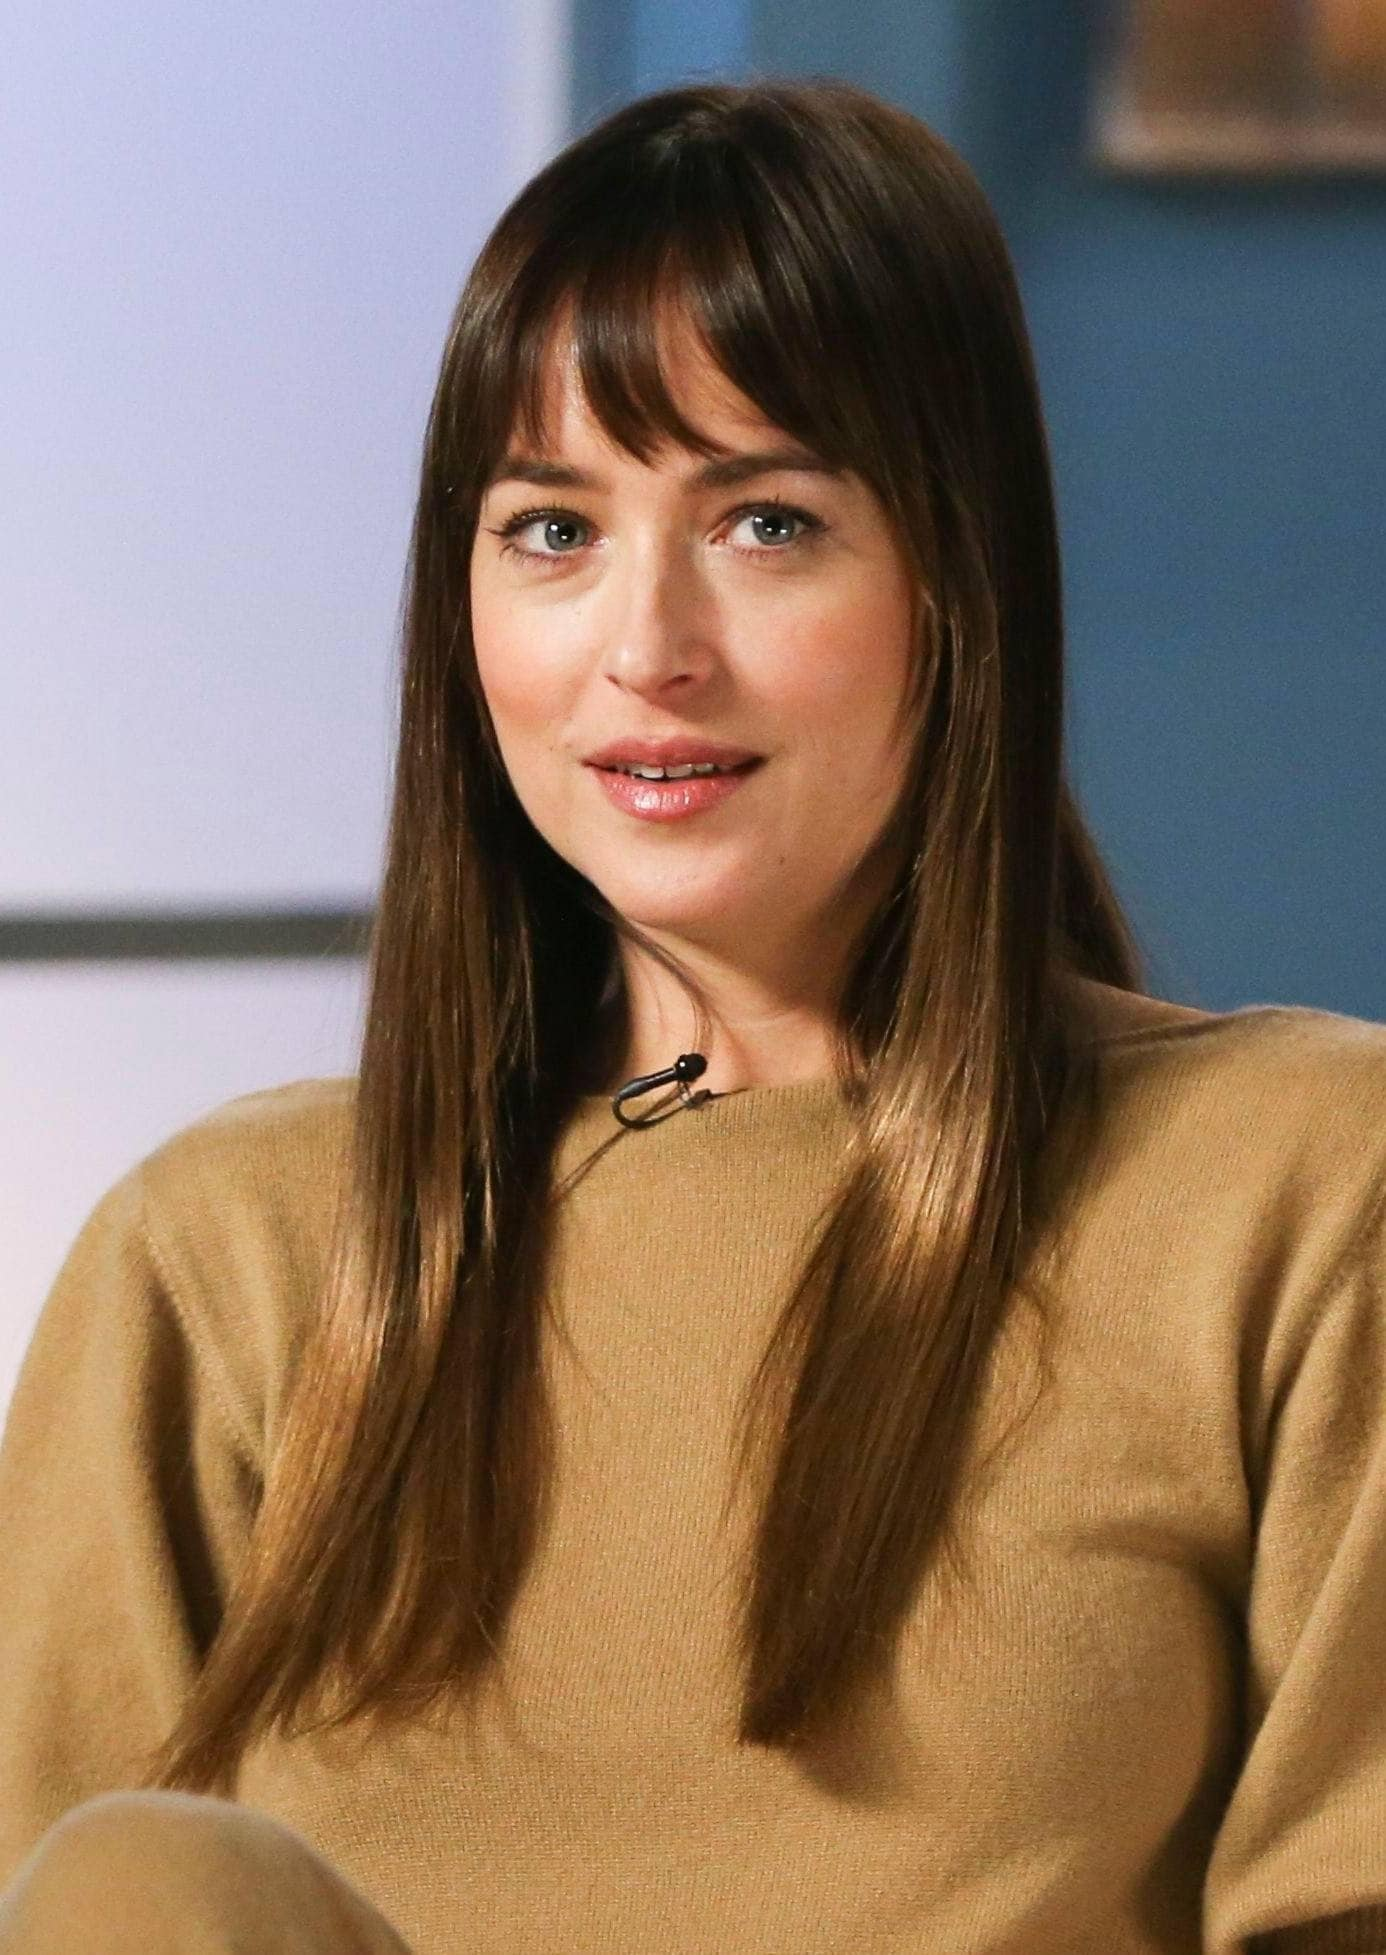 Haircuts for fine straight hair: Close-up of Dakota Johnson with long straight brown hair with a fringe